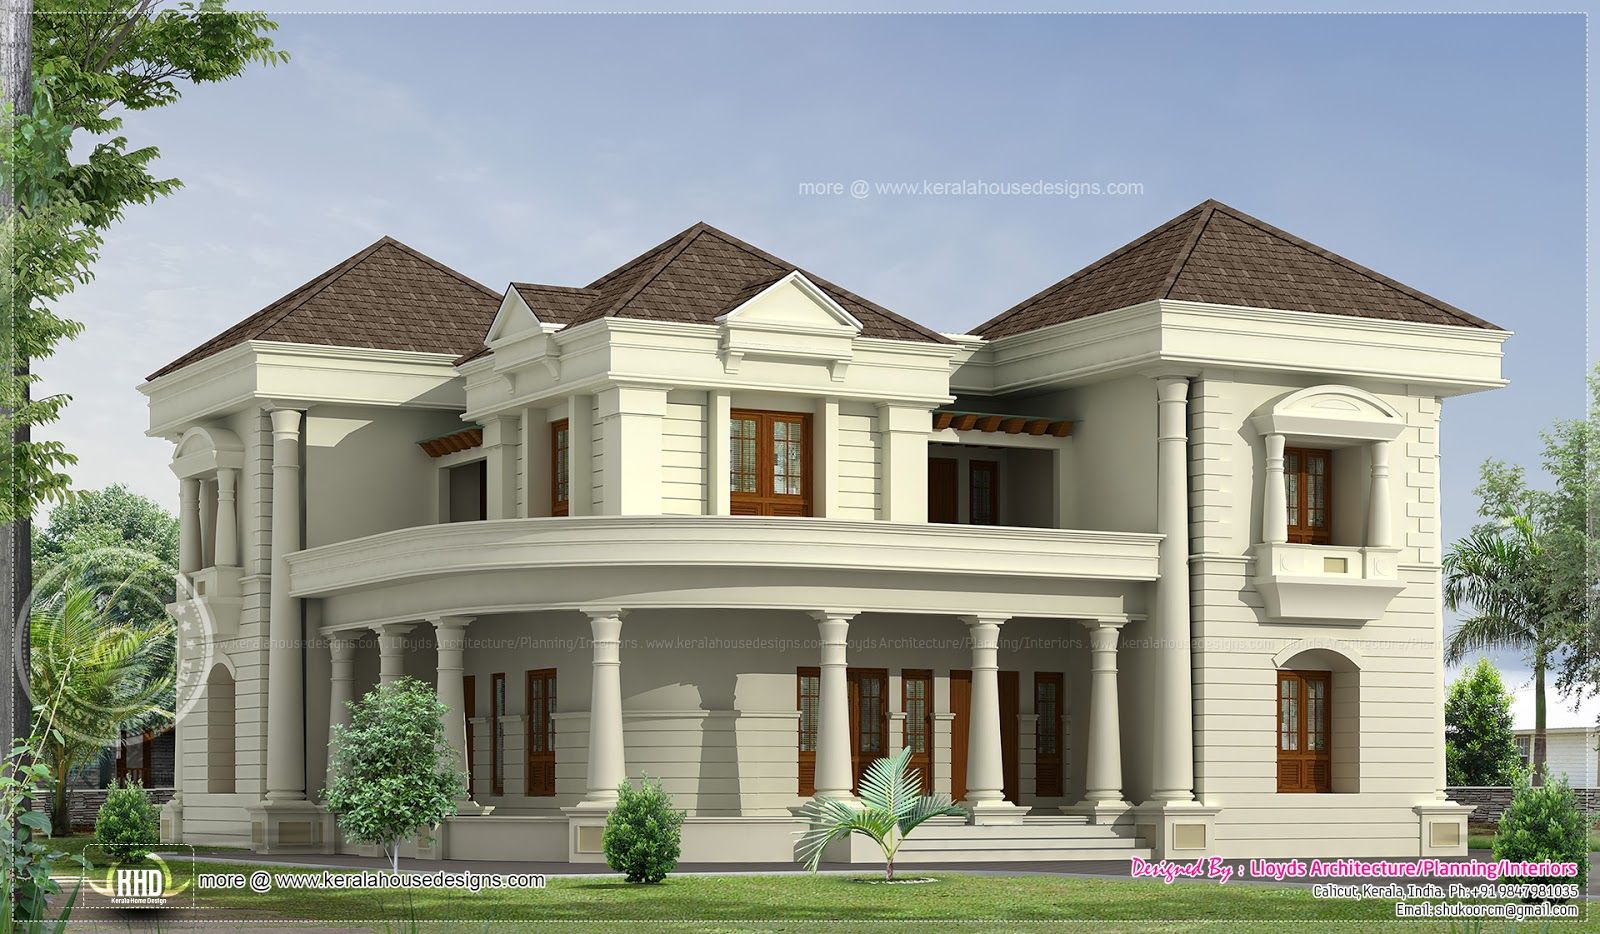 Modern bungalows bedroom luxurious bungalow floor plan for 5 bedroom house ideas